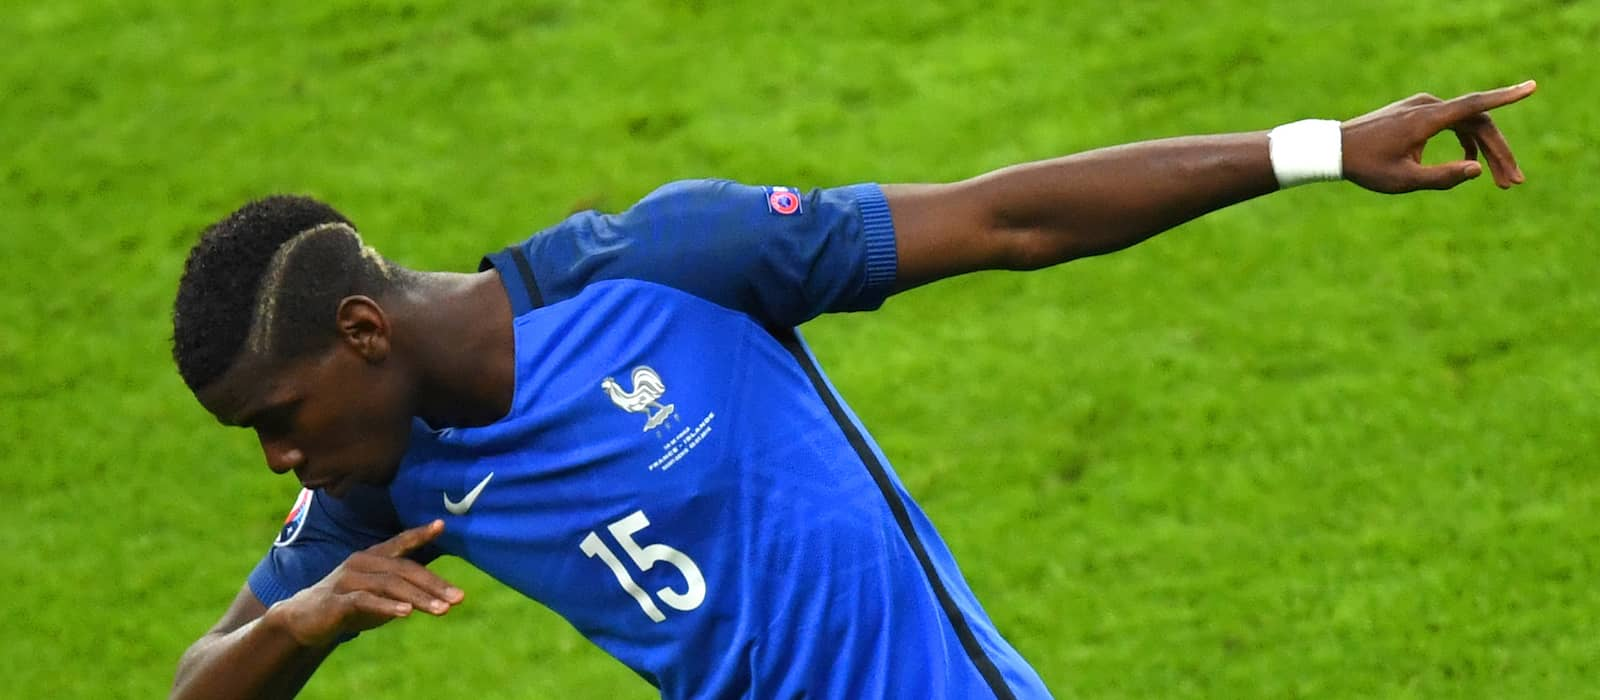 Roy Keane: Manchester United should definitely purchase Paul Pogba